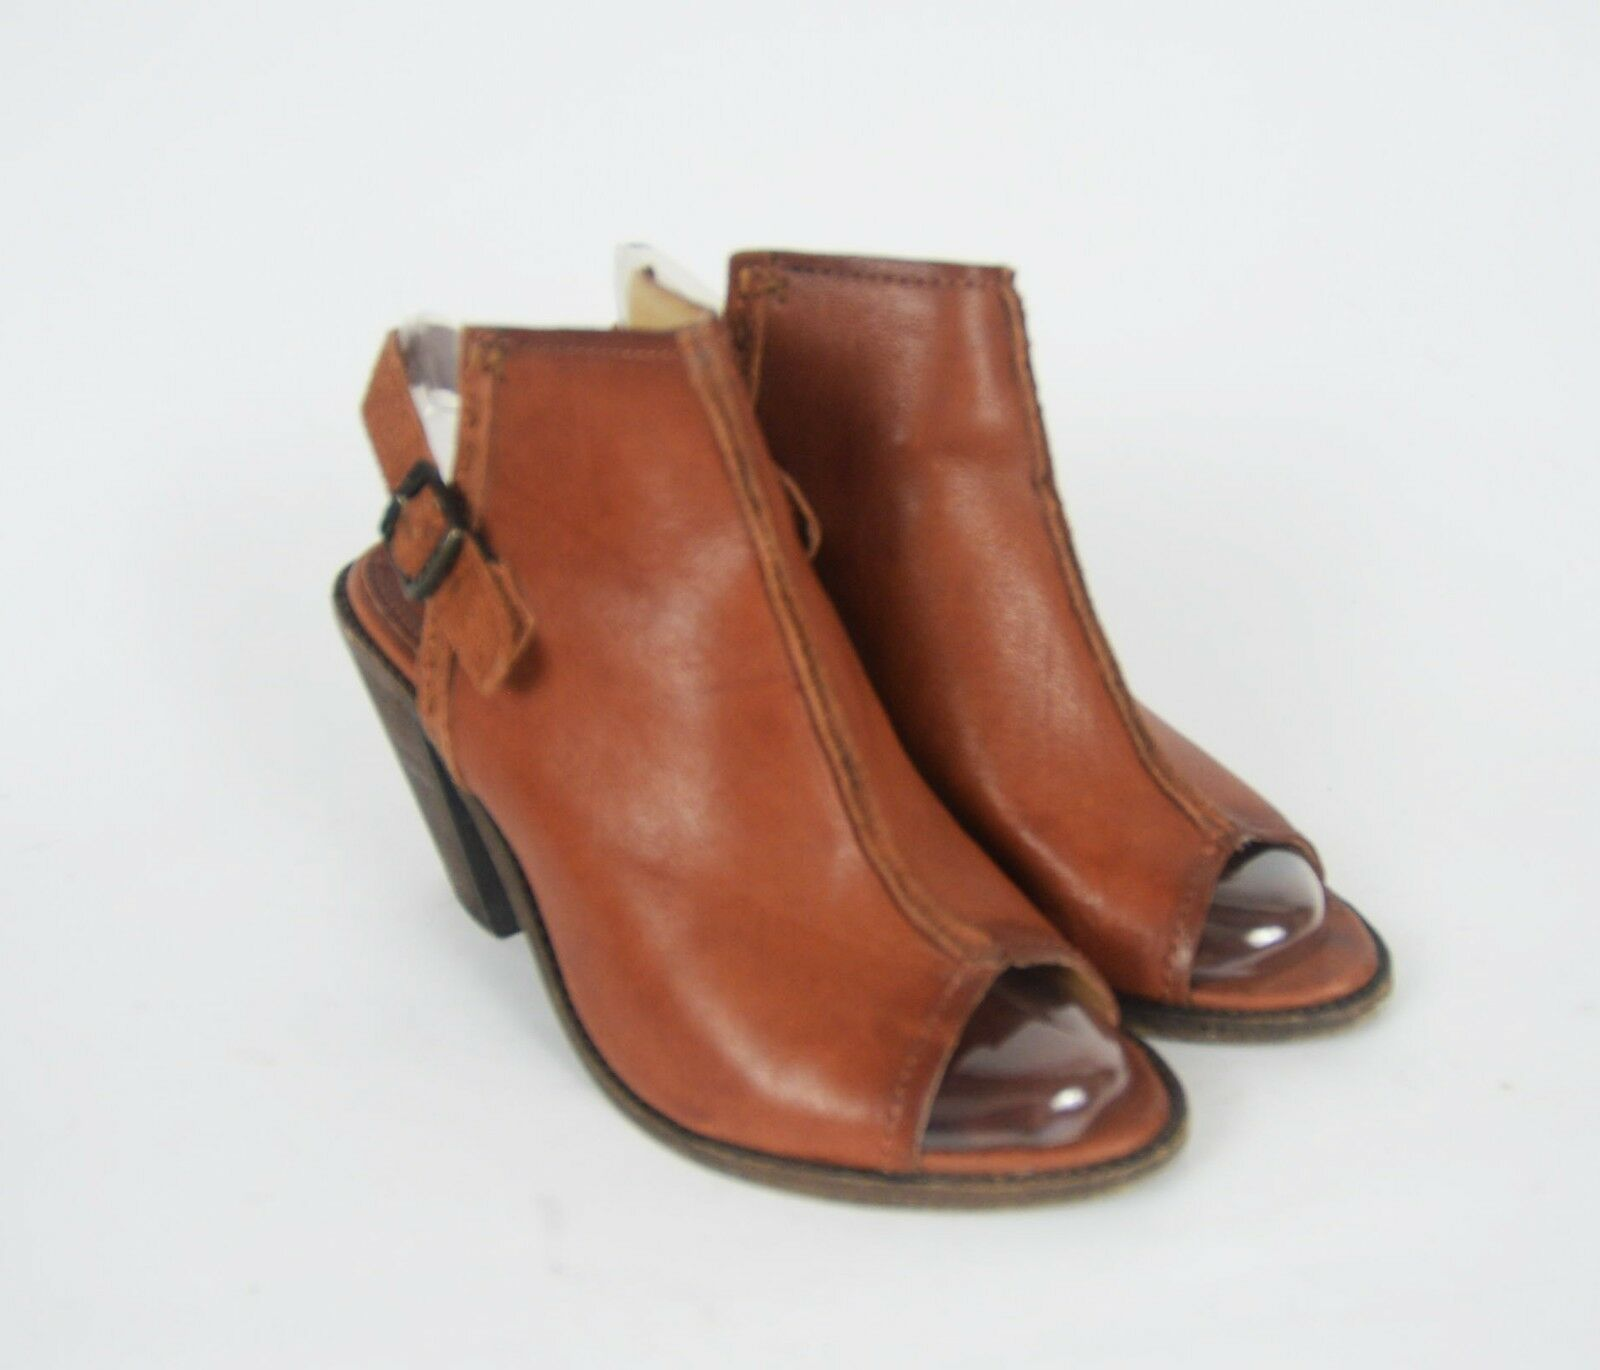 FRYE IZZY BOOTIES COGNAC SZ 9 B LEATHER